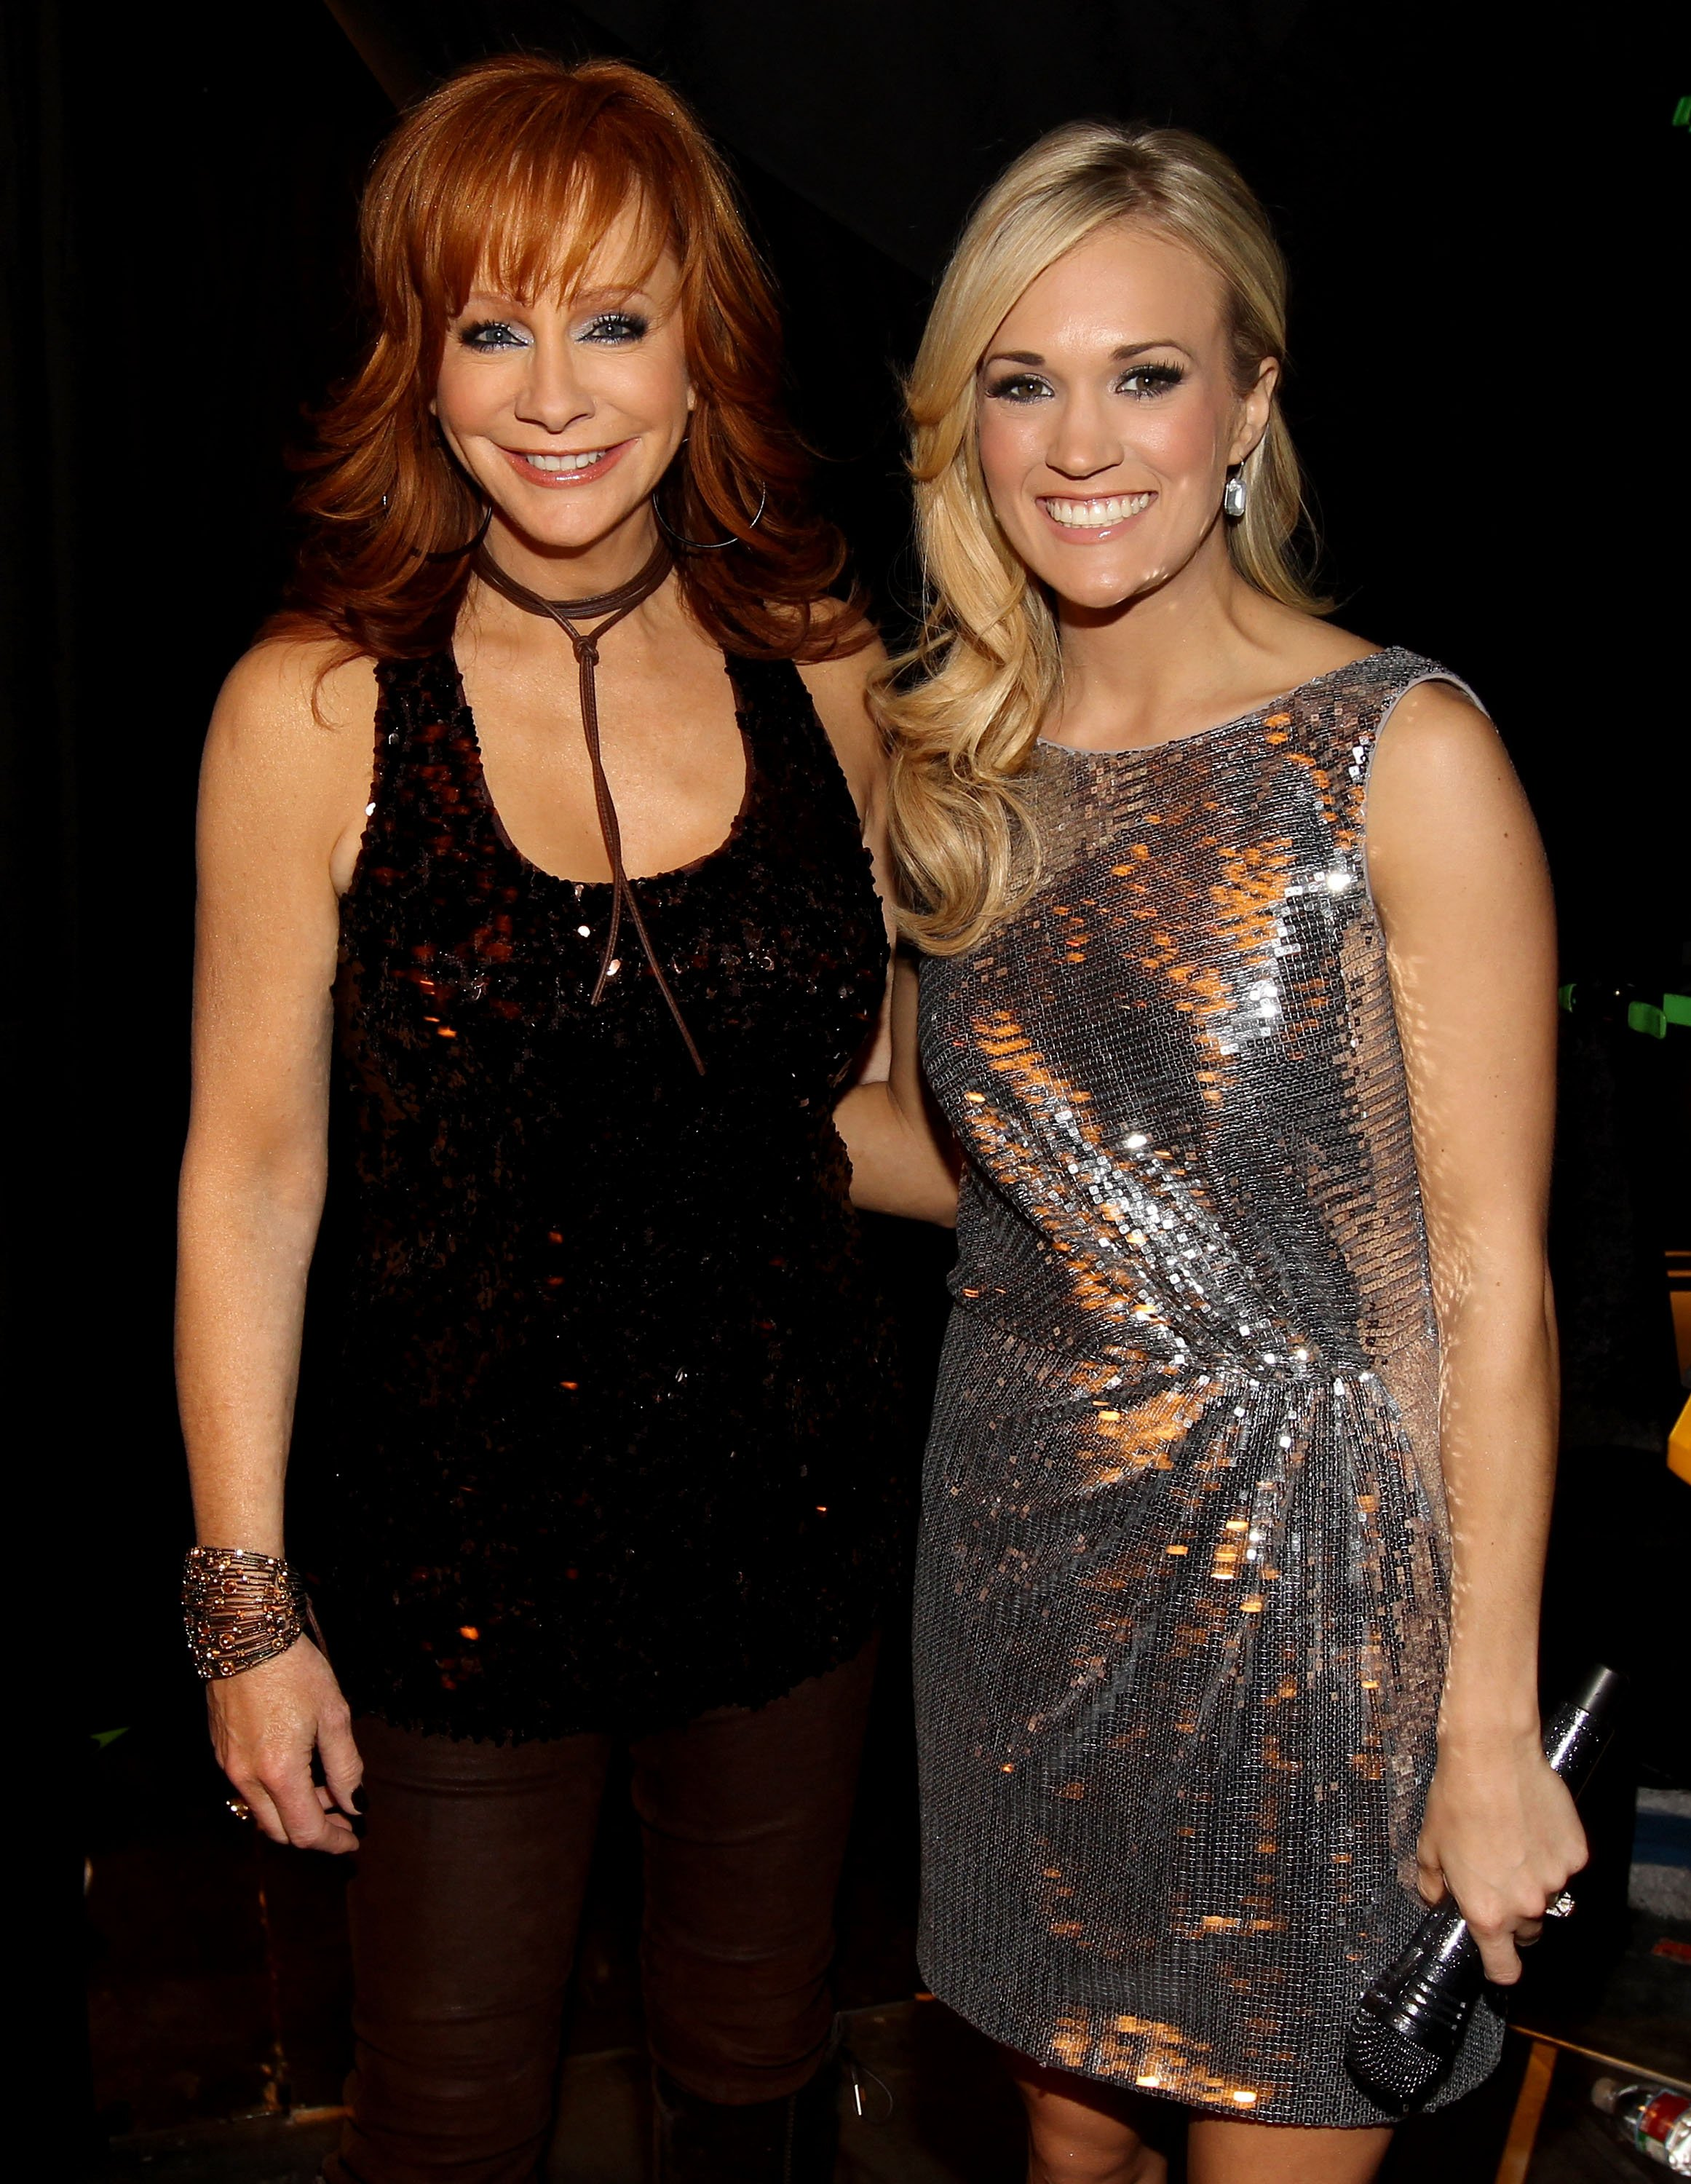 Reba McEntire and Carrie Underwood attend the Last Rodeo Show in Las Vegas, Nevada on April 19, 2010 | Photo: Getty Images